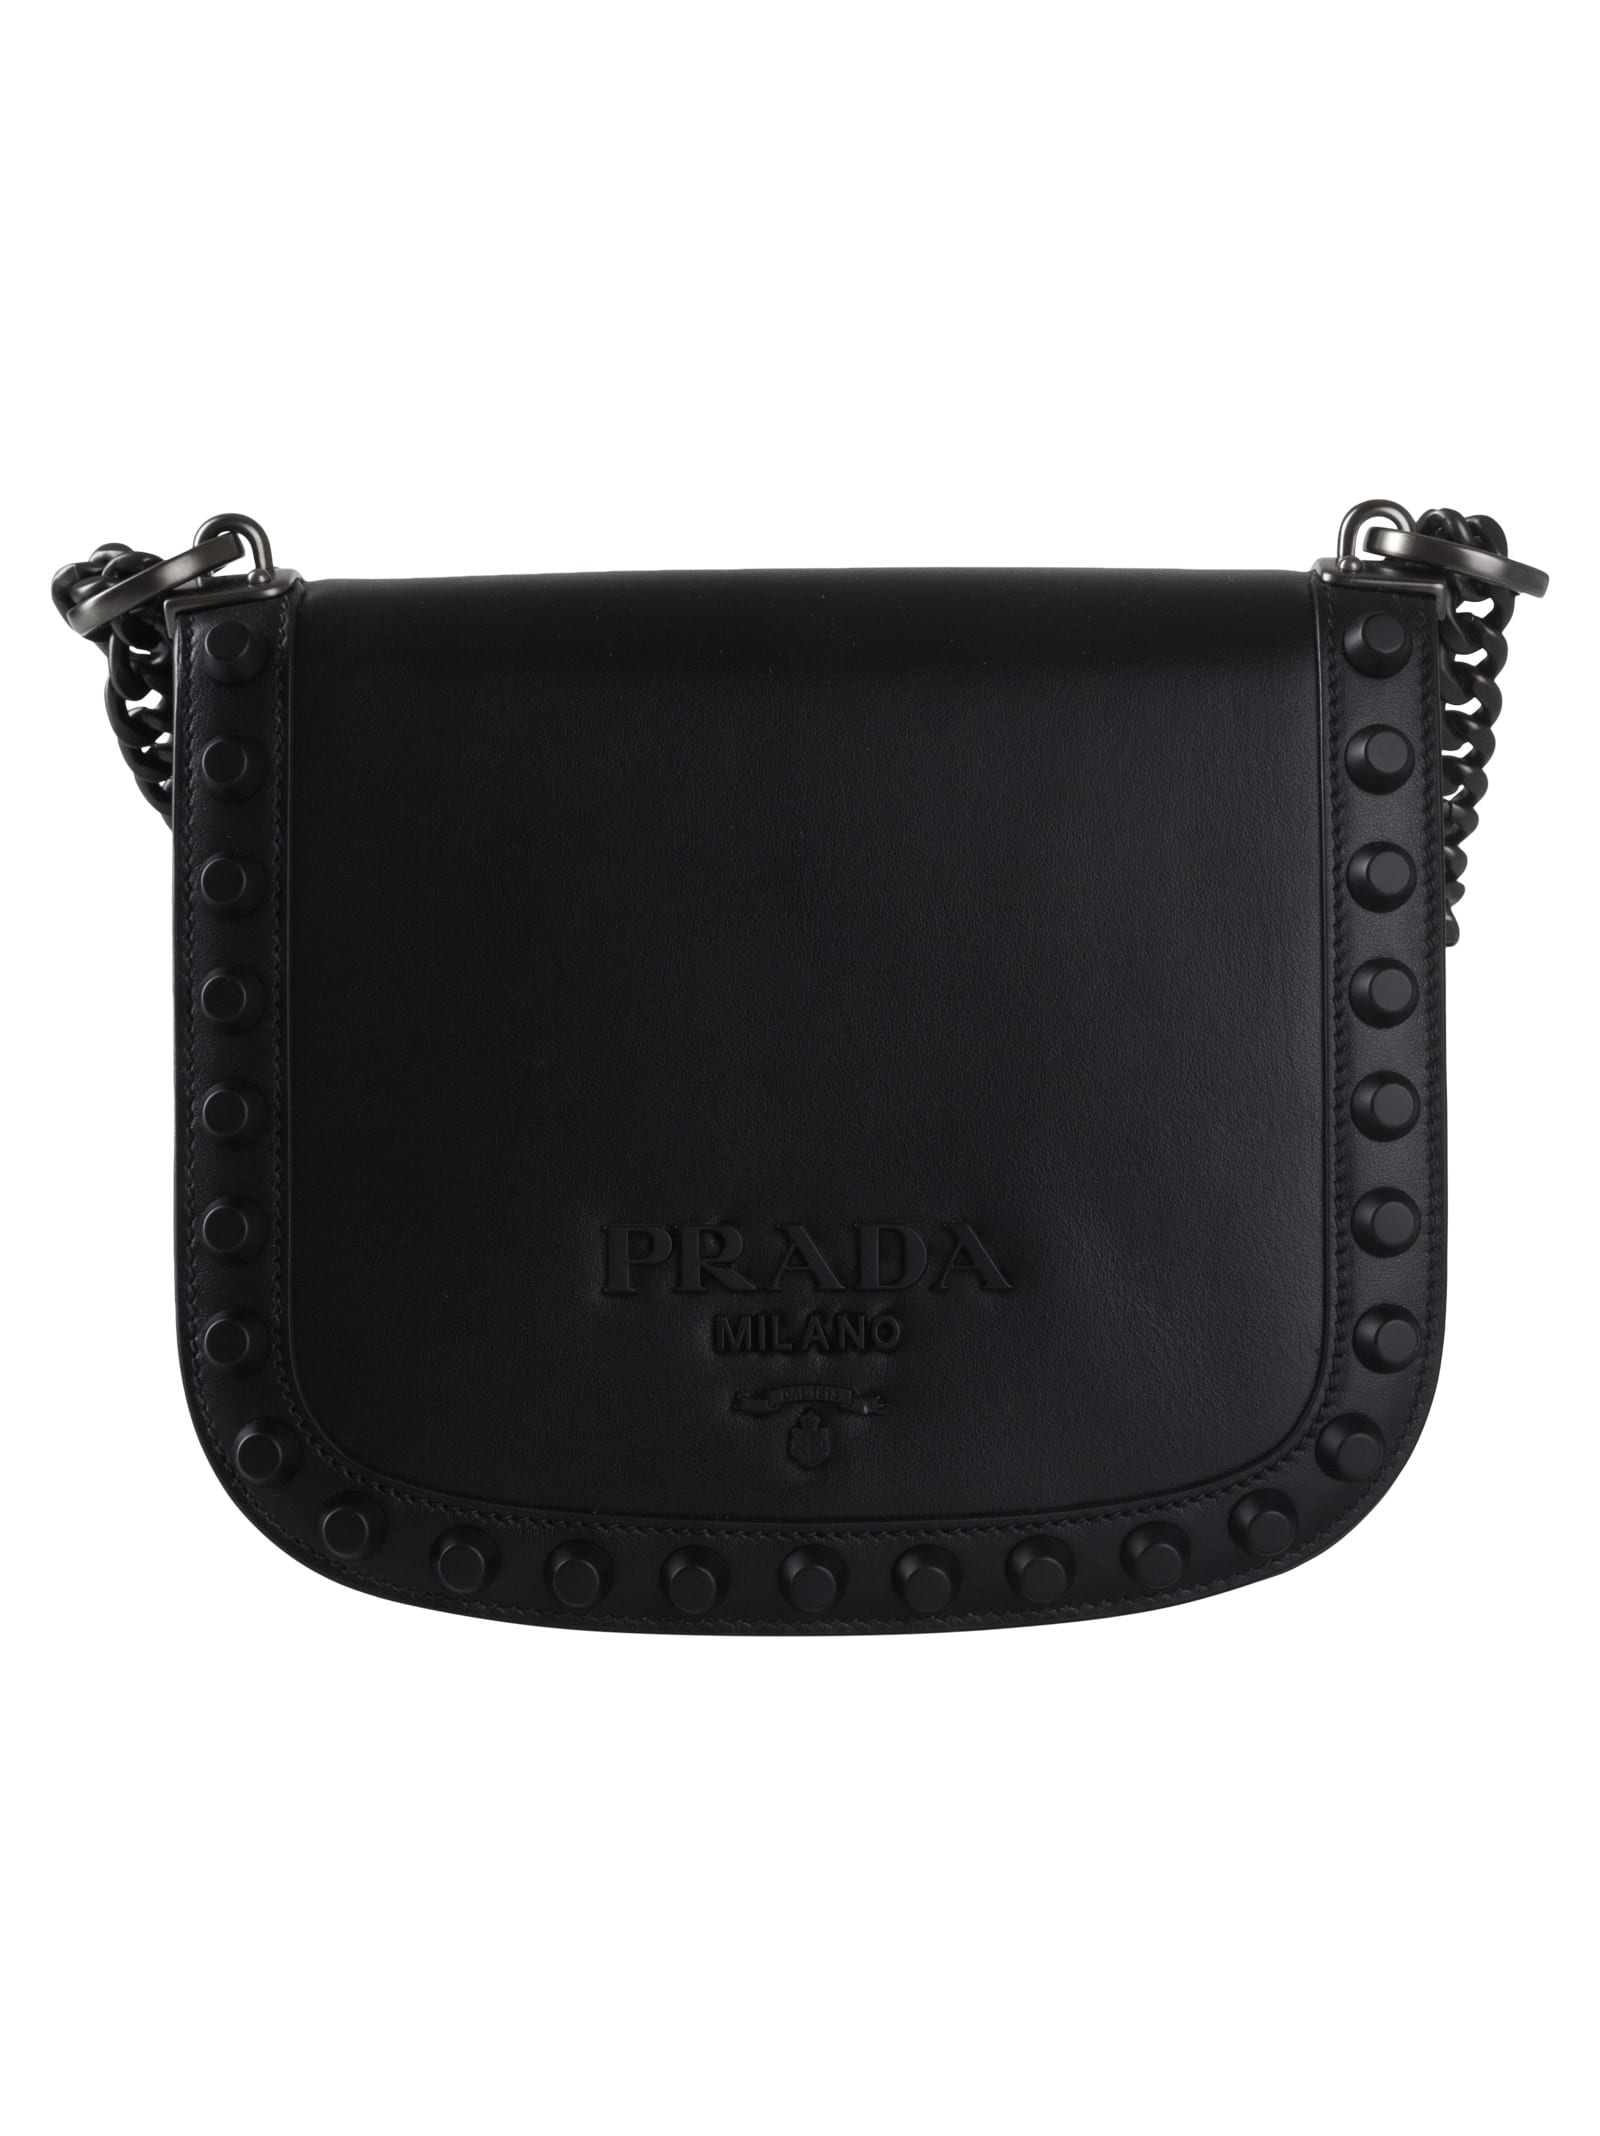 0082d52a5 Prada Prada Studded Shoulder Bag - 10707816 | italist